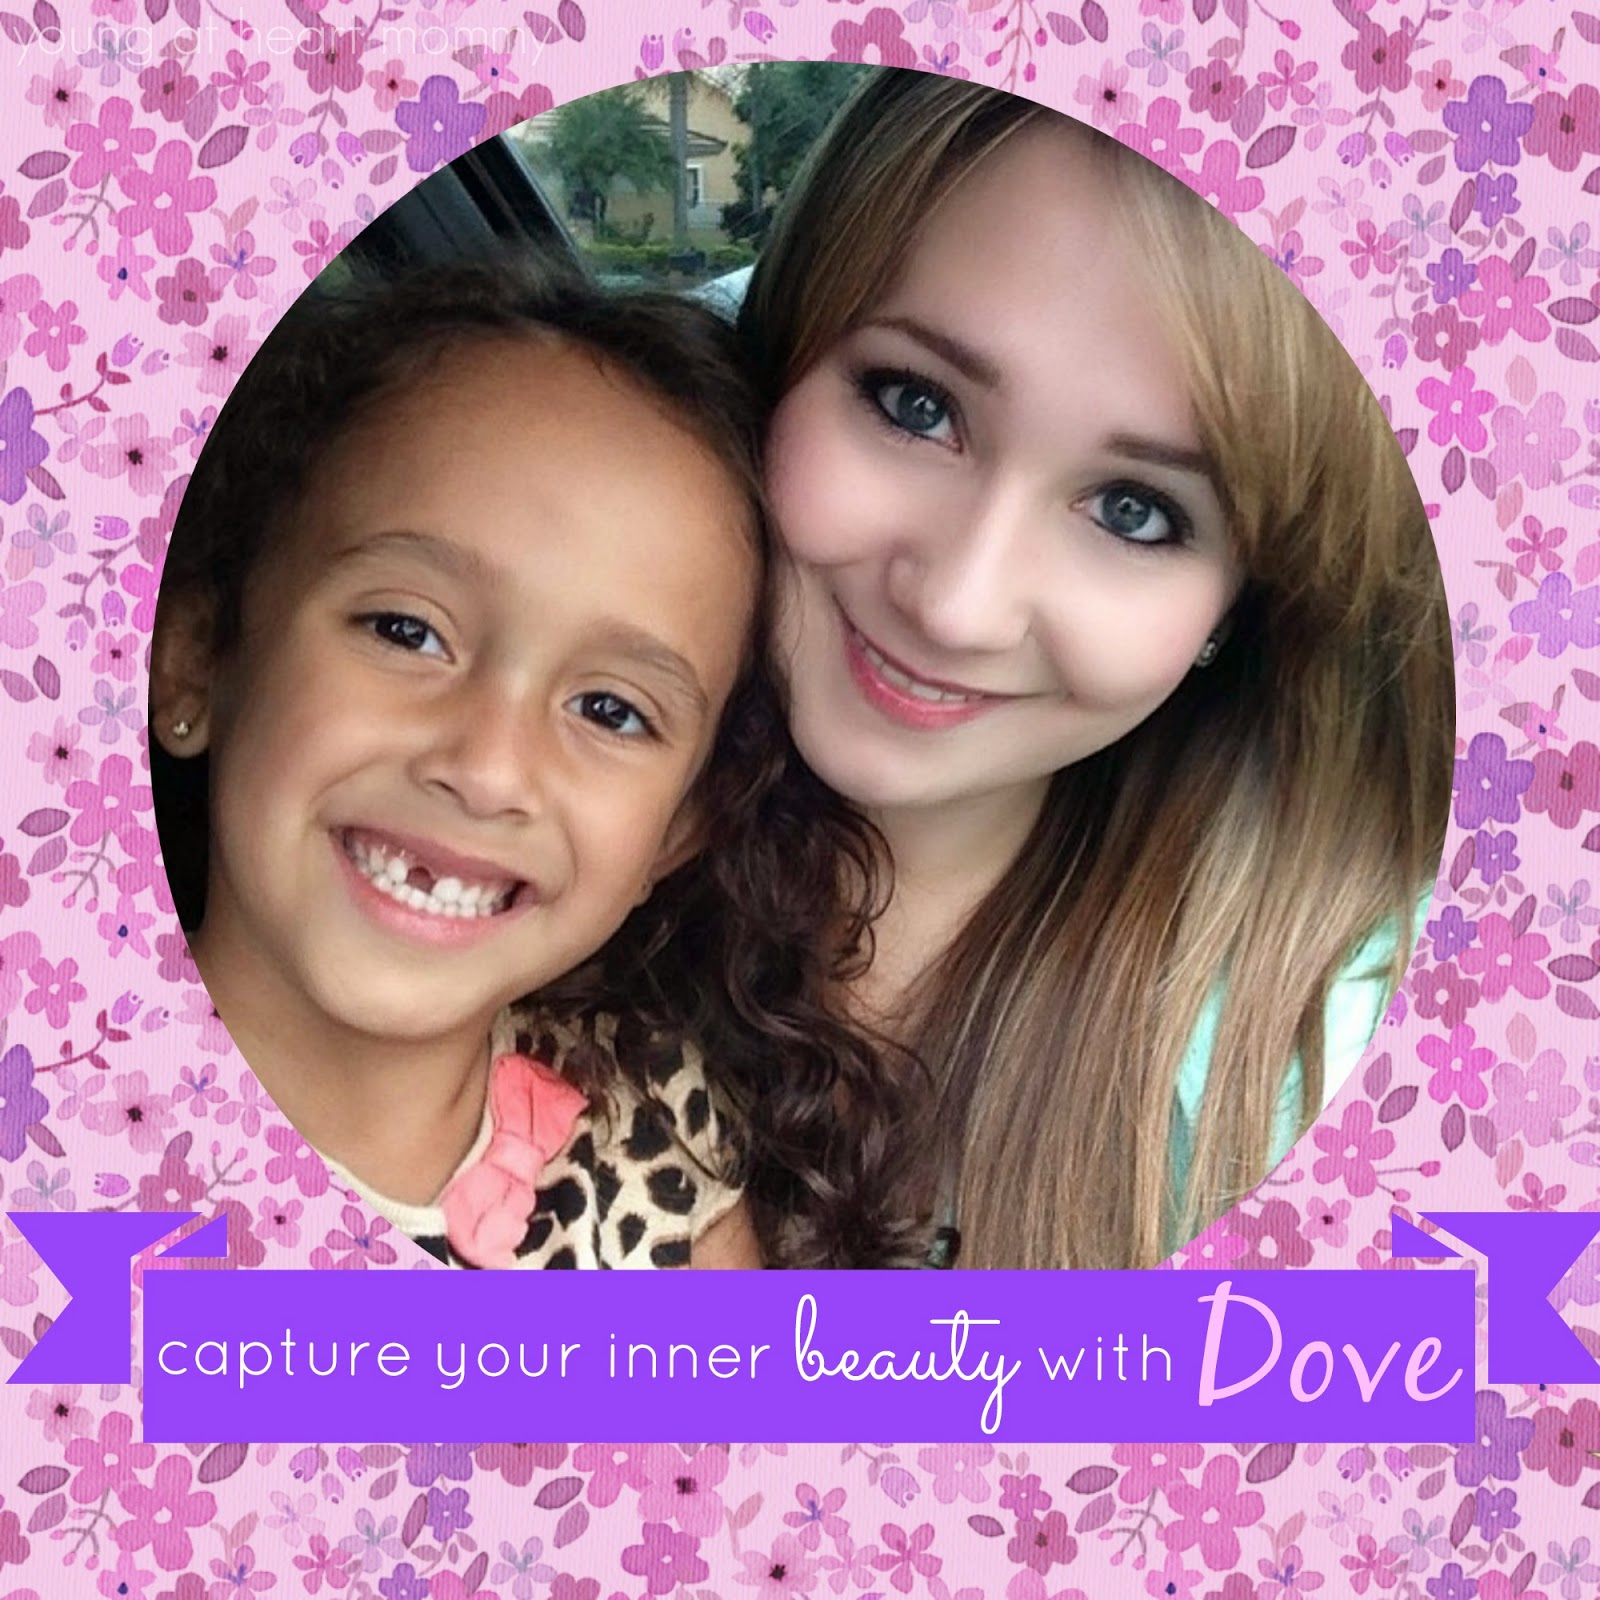 Capture Your Inner Beauty With Dove This Mother's Day #spon - Young At Heart Mommy